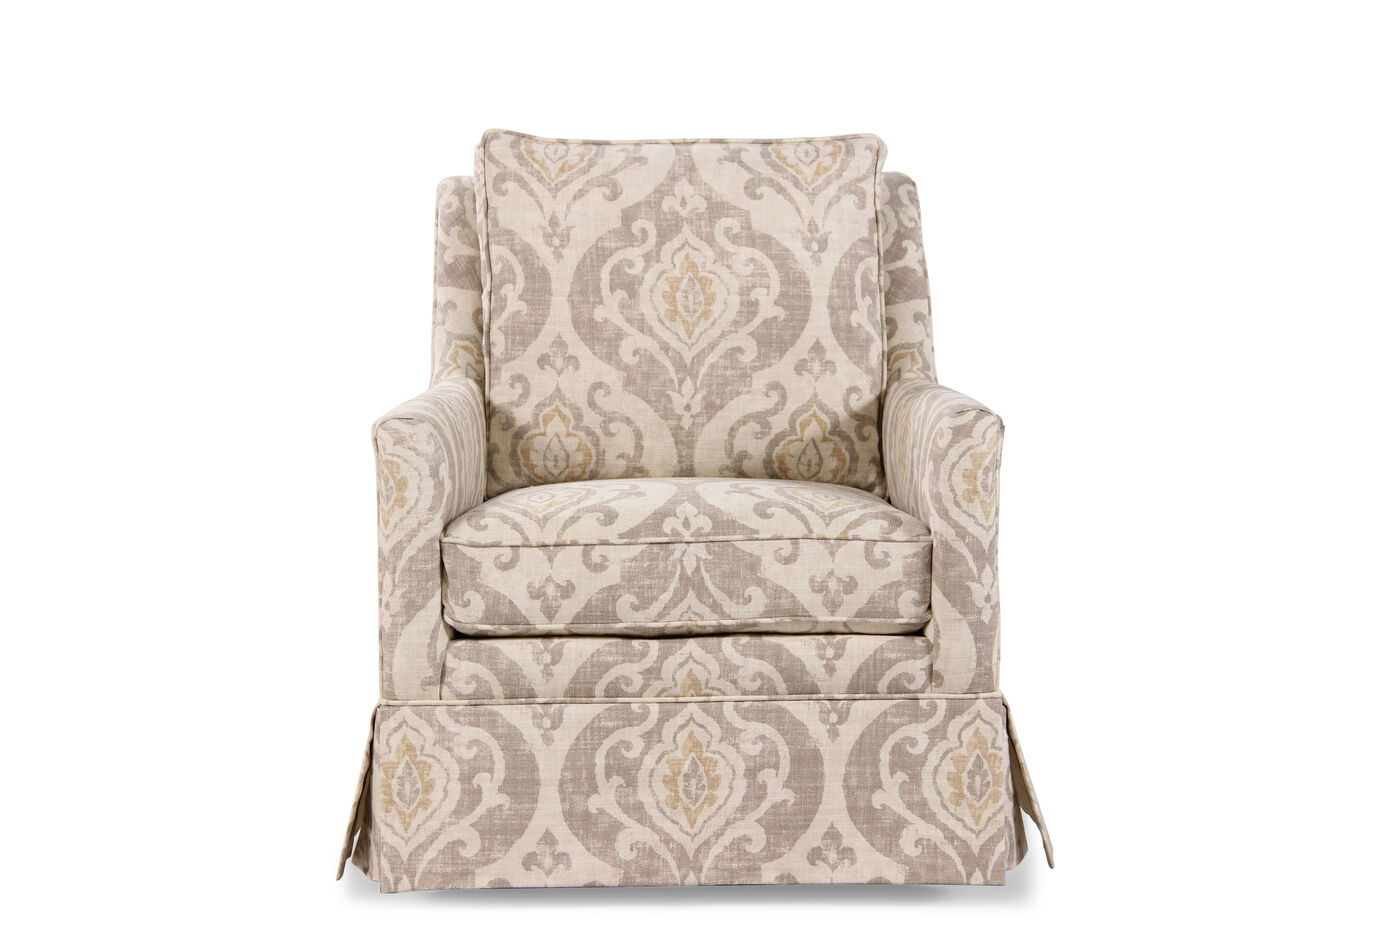 Paisley Patterned Transitional 29 5 Swivel Chair In Cream Mathis Brothers Furniture